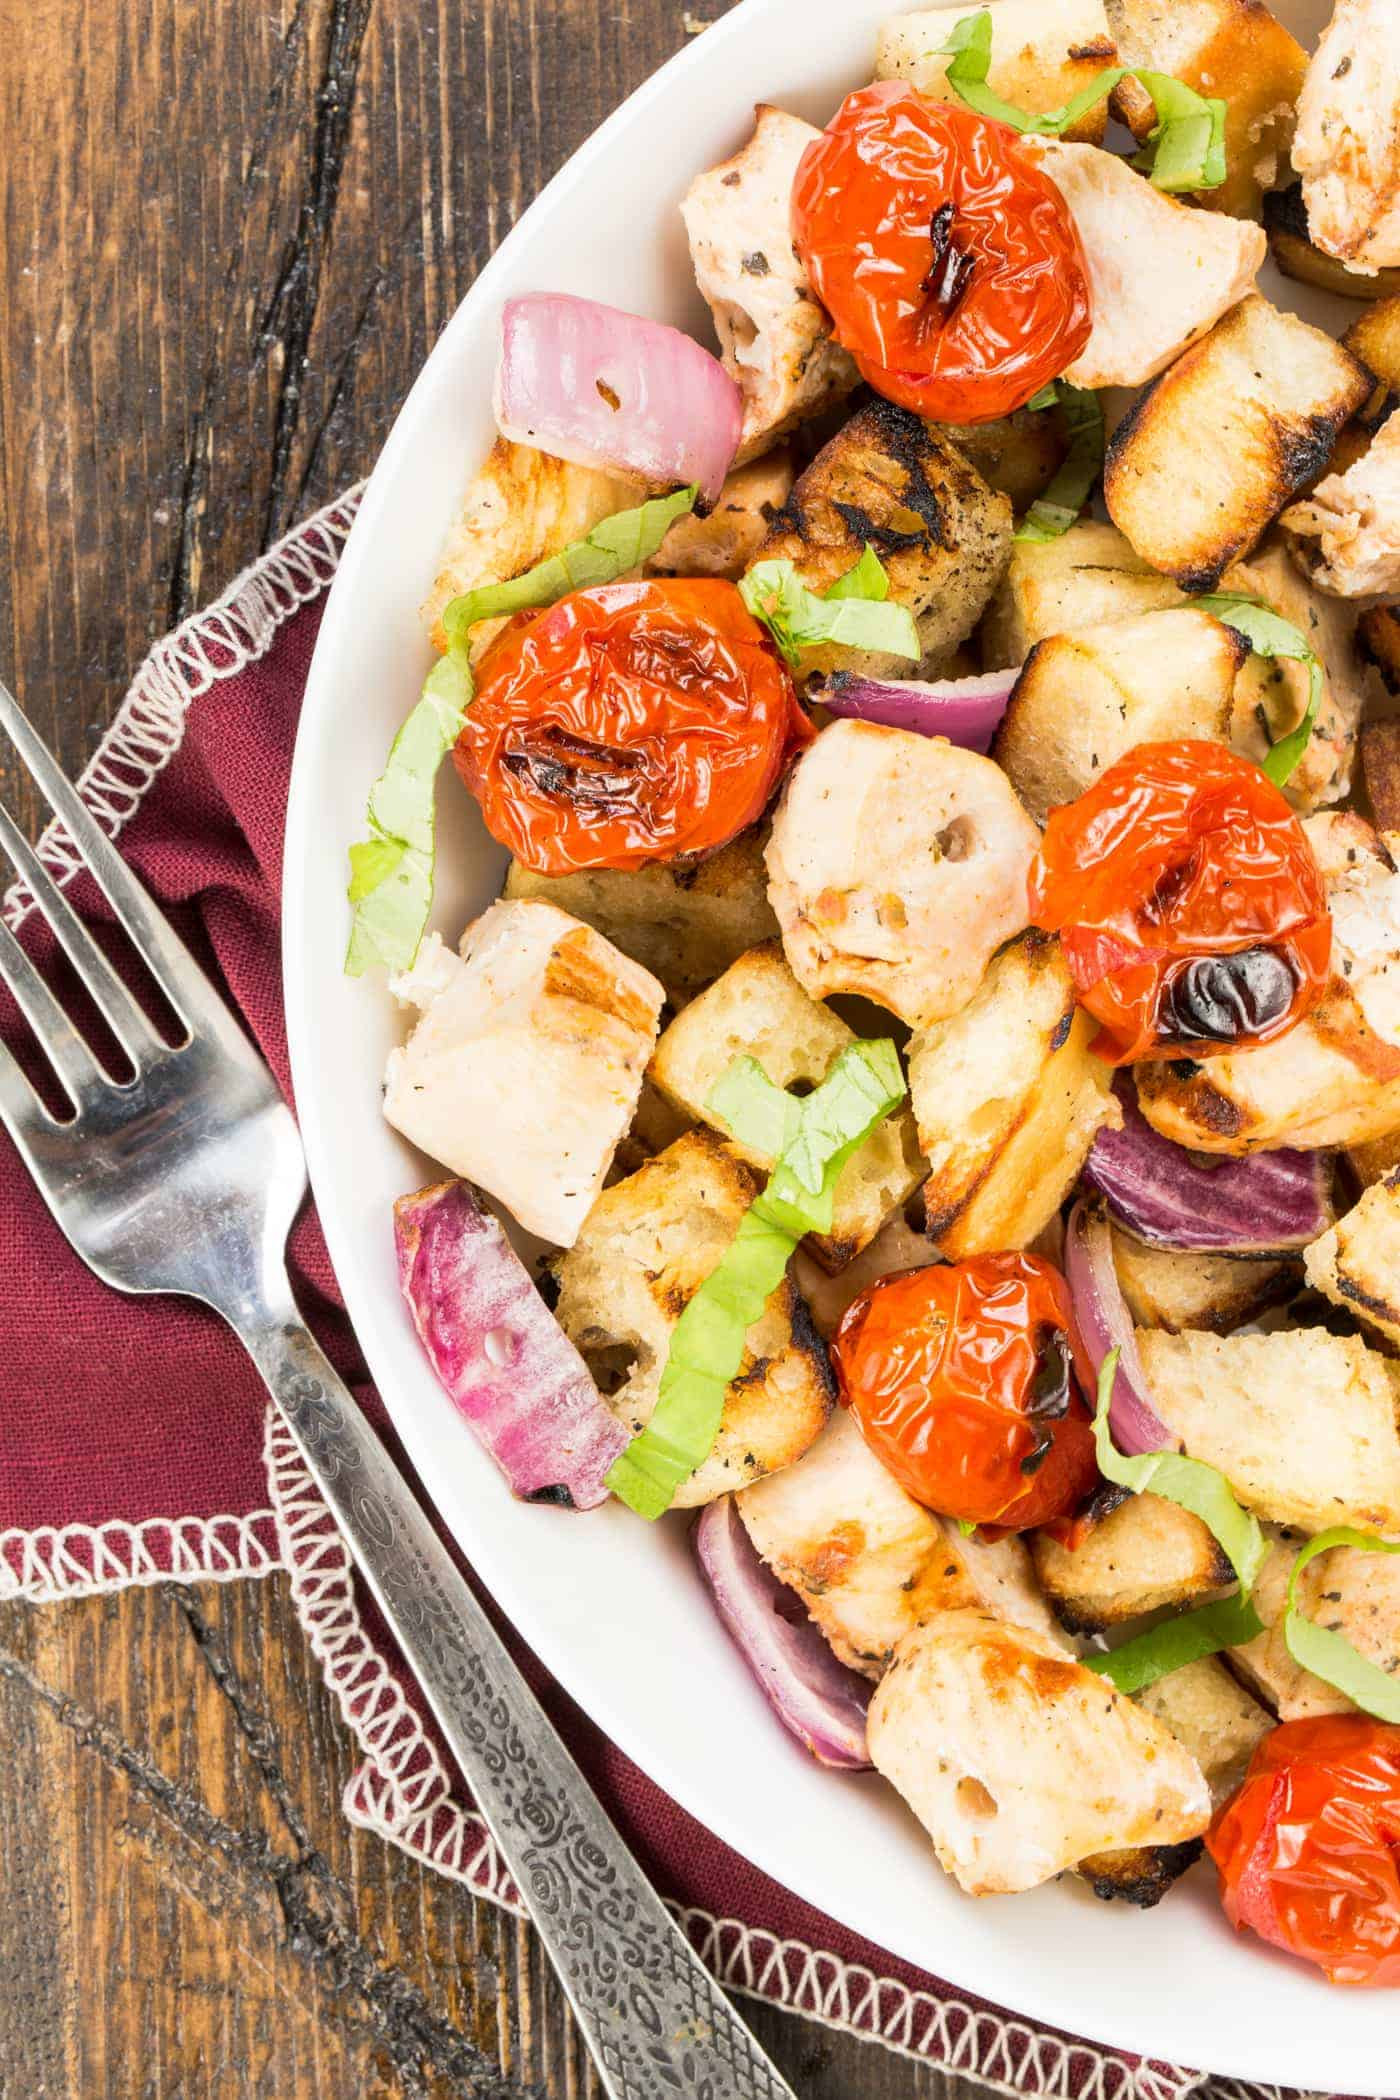 This 7 ingredient Grilled Italian Bread Salad with Tomato Basil Chicken recipe can be on the table in roughly 30 minutes - perfect for busy weeknights!